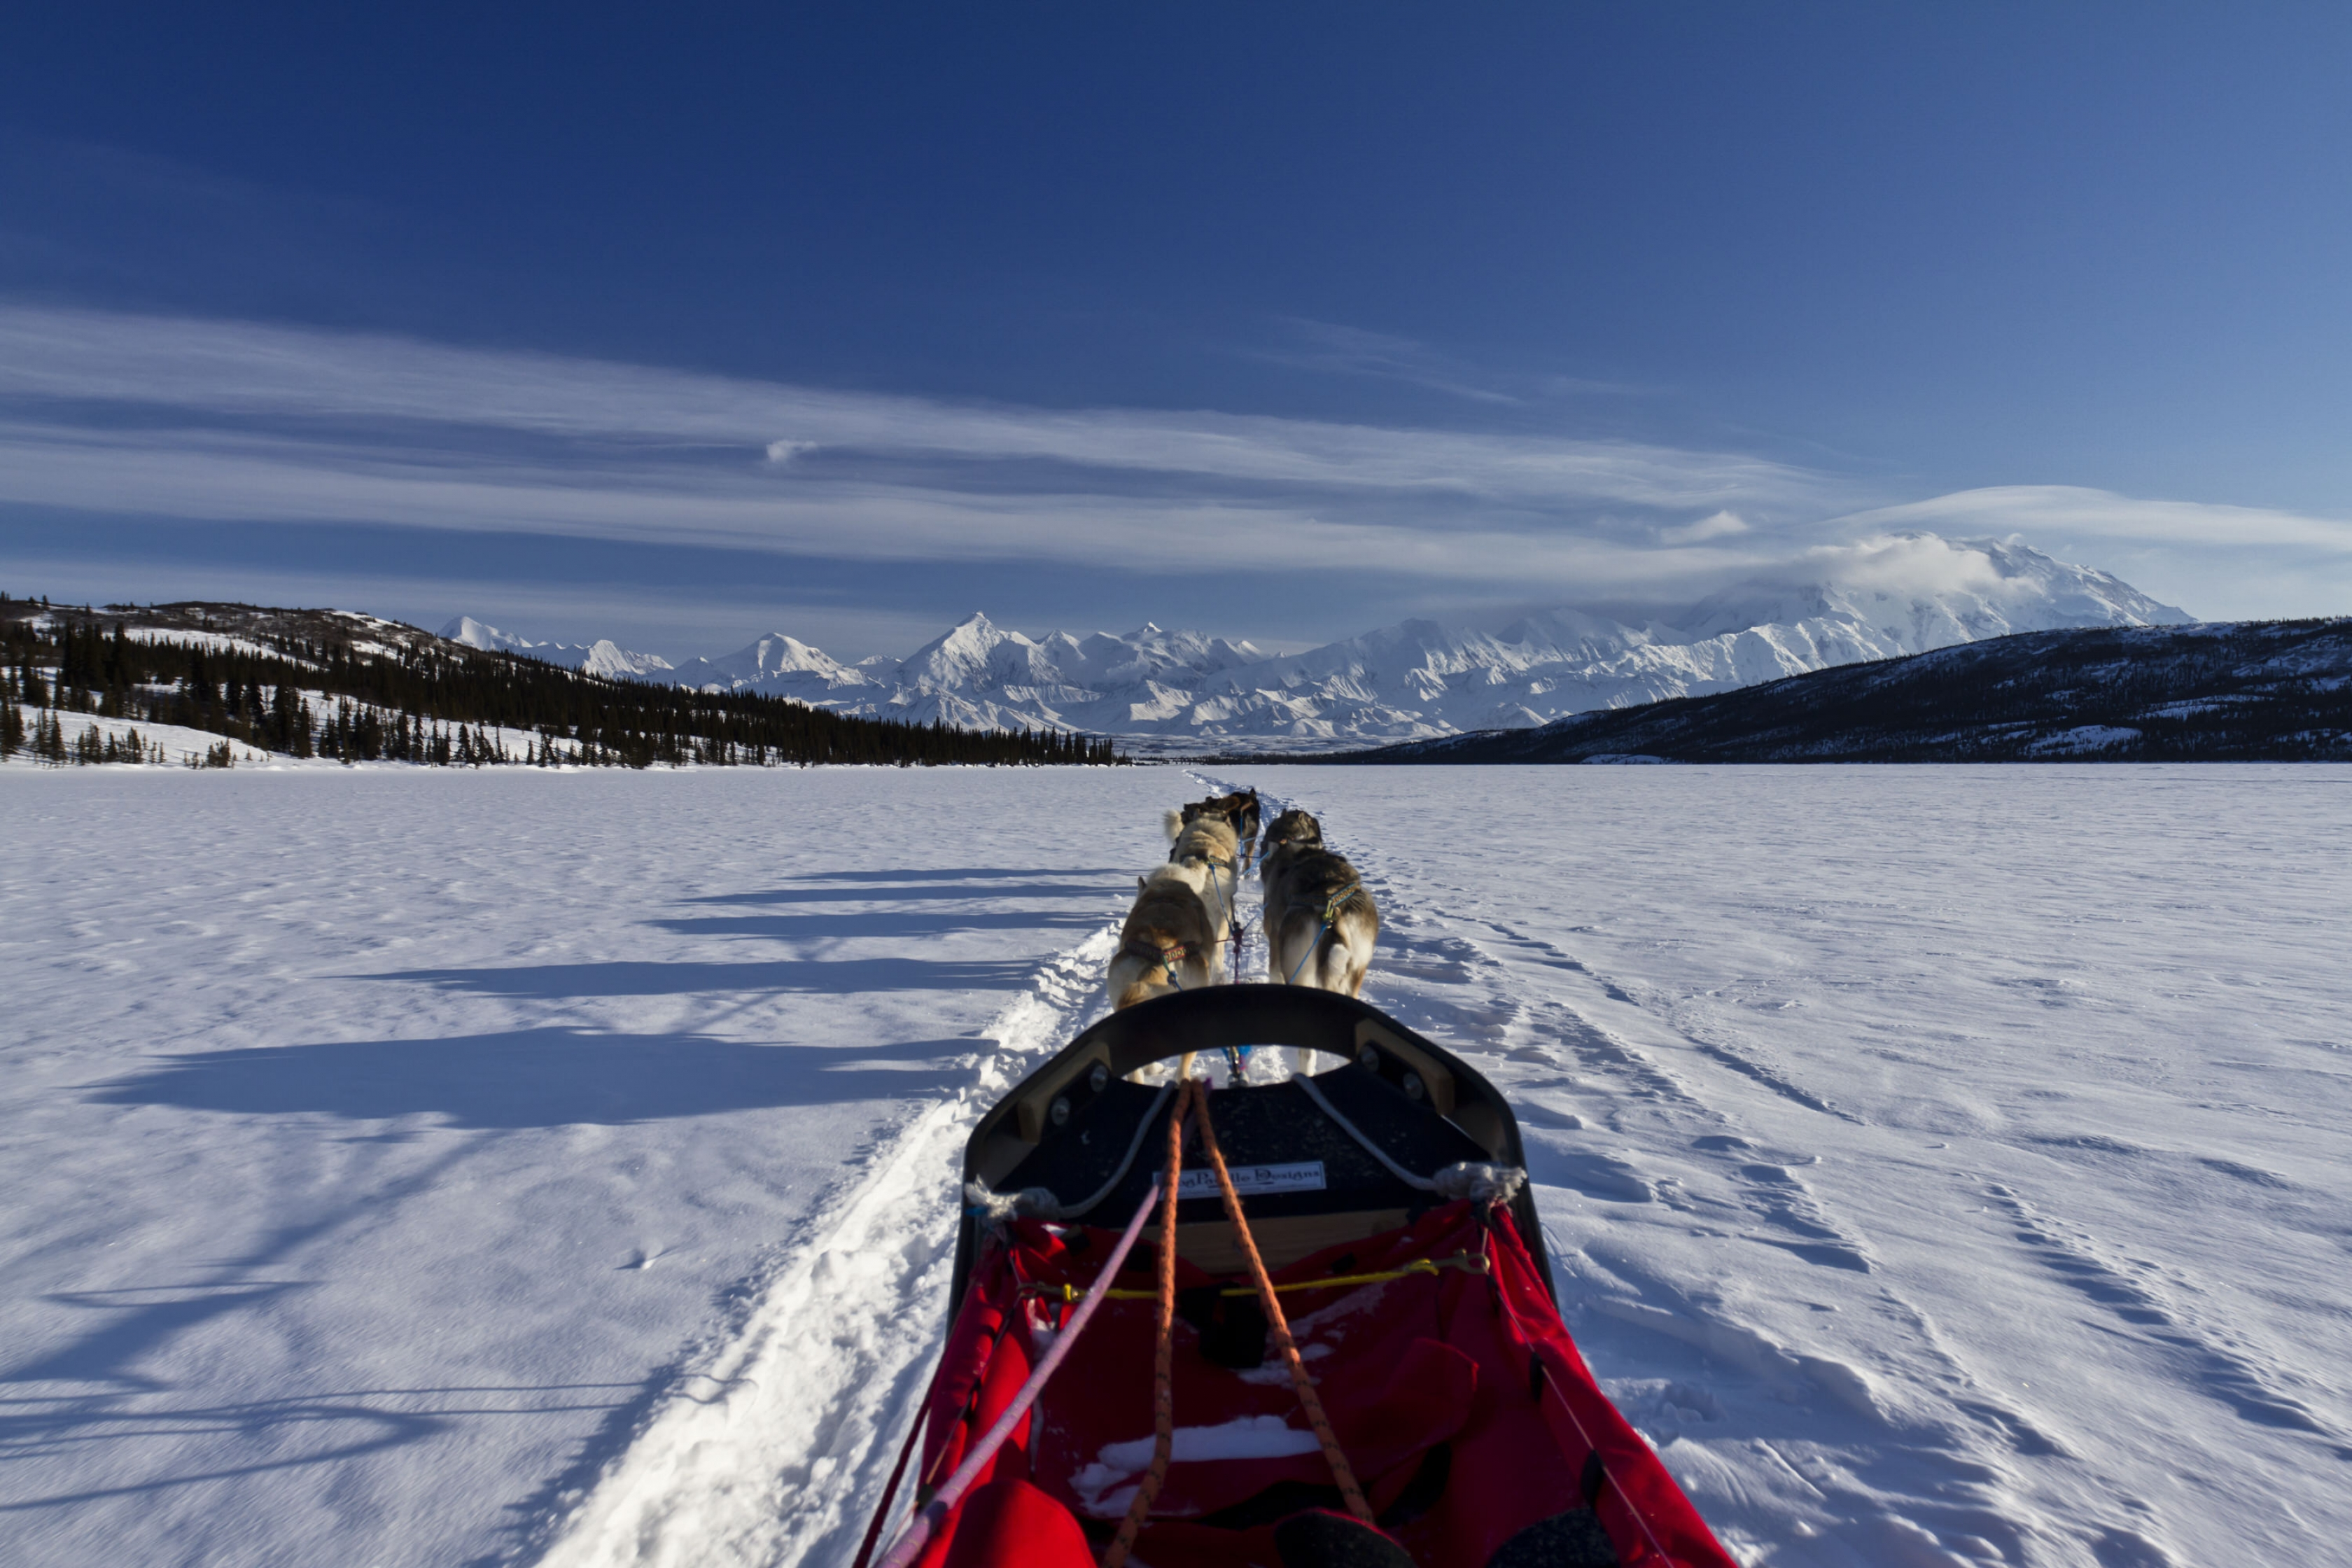 The view being a sled pulled by a dog team with mountains in front surrounded by snow at Denali National Park and Preserve